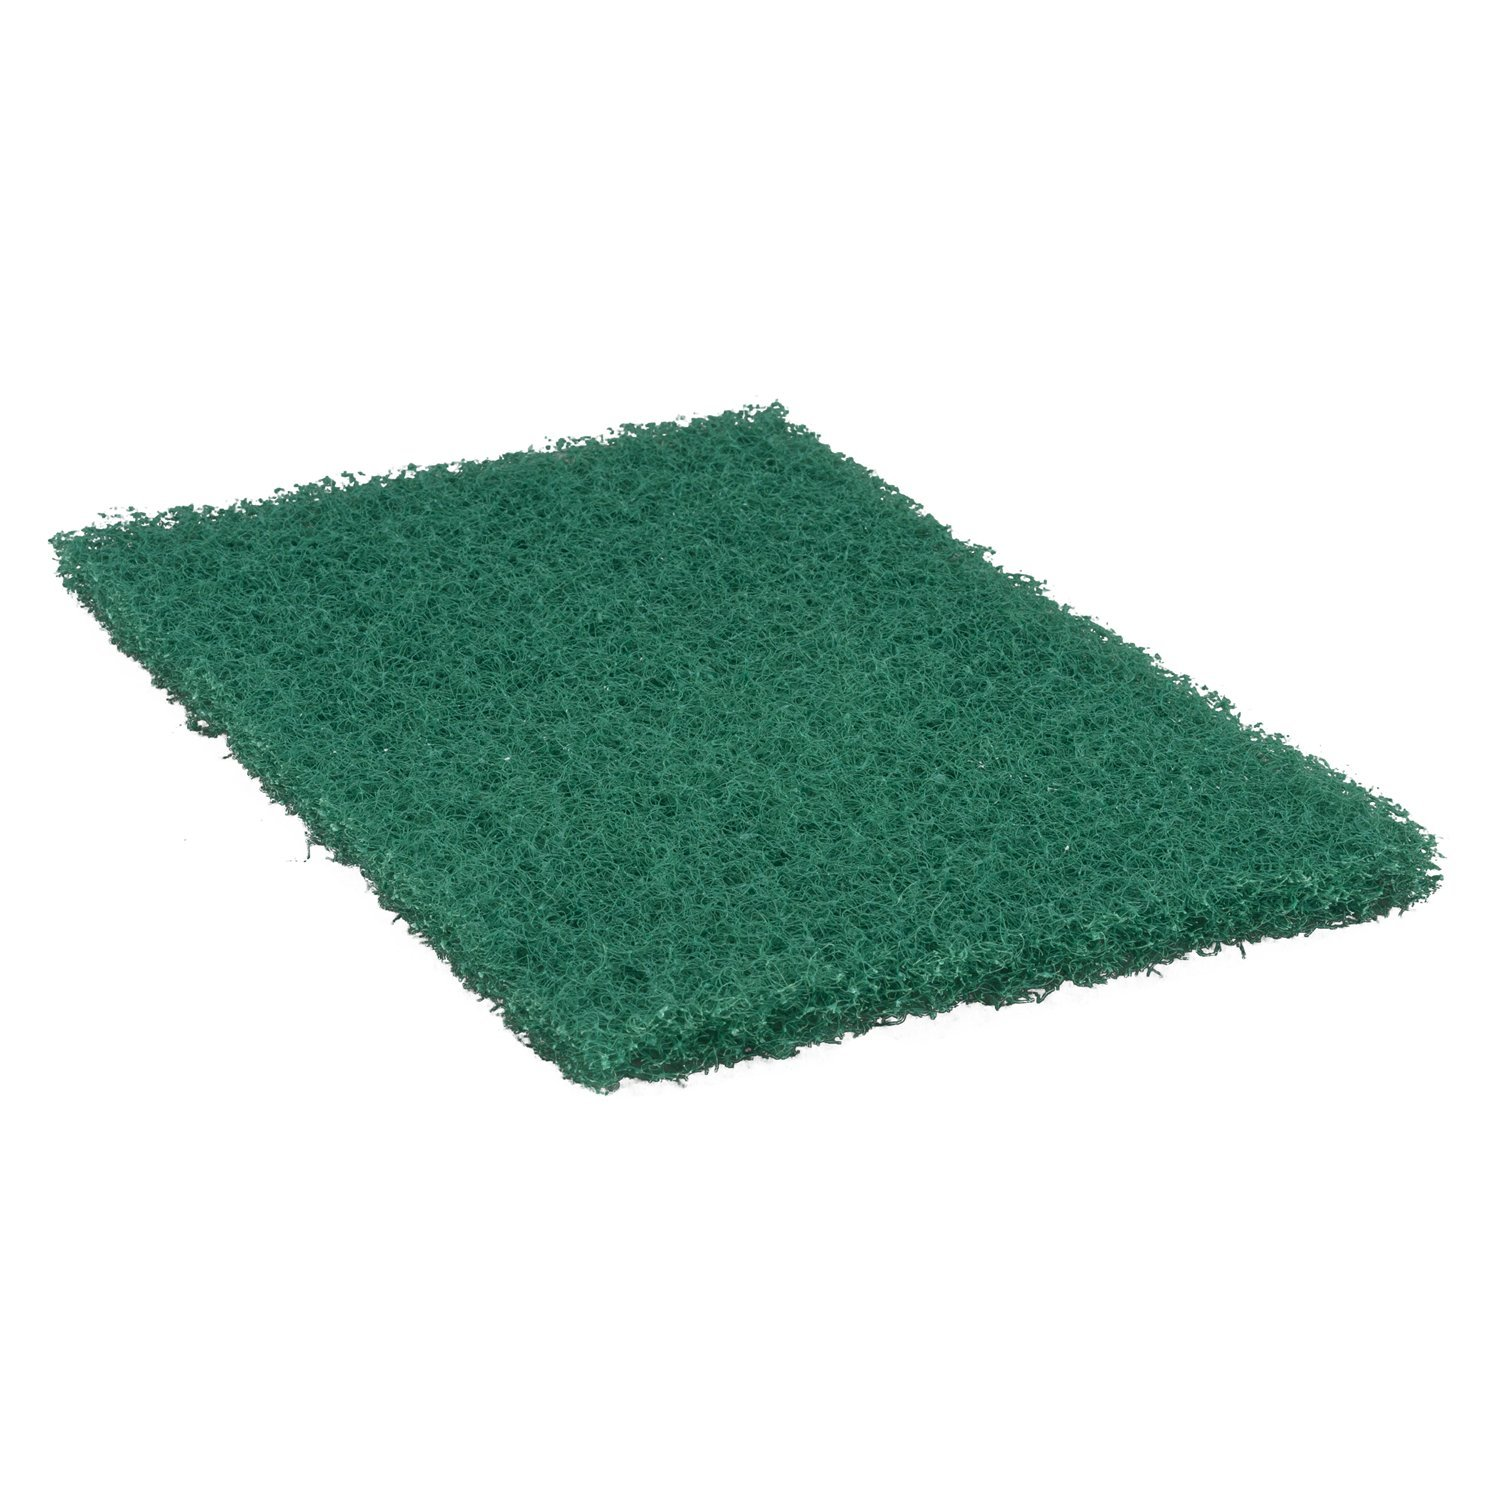 Scotch-Brite Heavy Duty Scouring Pad 86CC, 6'' x 9'' (6 Packs of 10) by Scotch-Brite